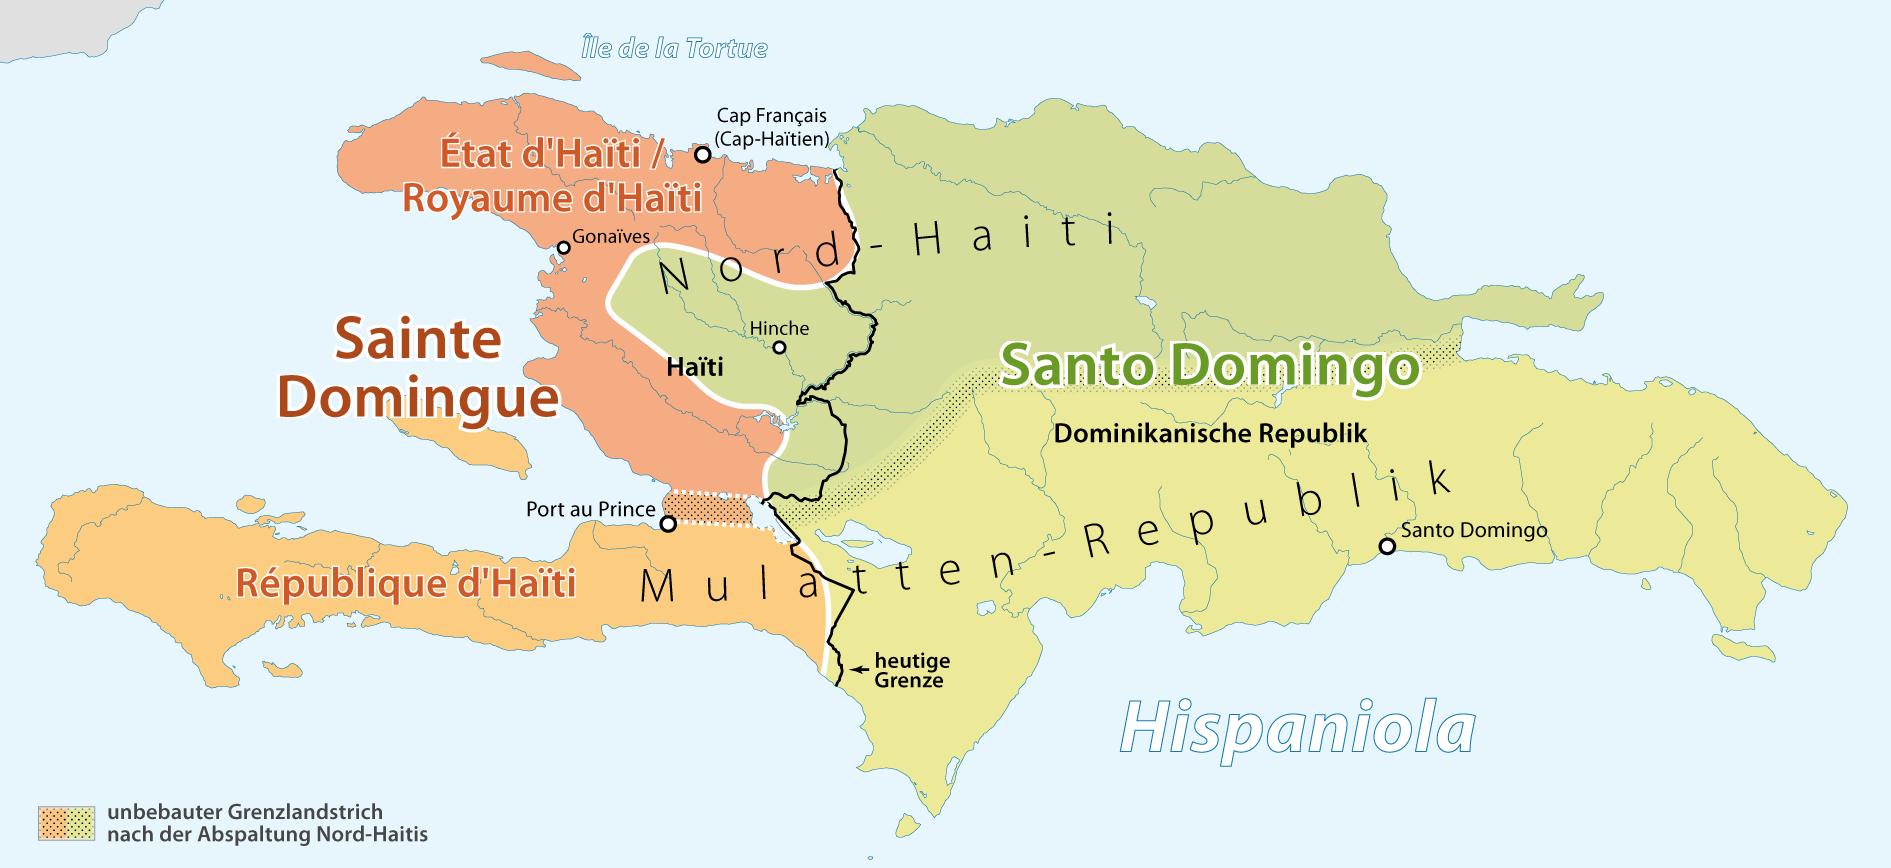 hispanola map with File Haiti Und Dominikanische Republik   Gebietsentwicklung on Dominican Republic For World Map as well Guerra furthermore Martinique further Where Did Christopher Columbus Ships Land further 9843539374.